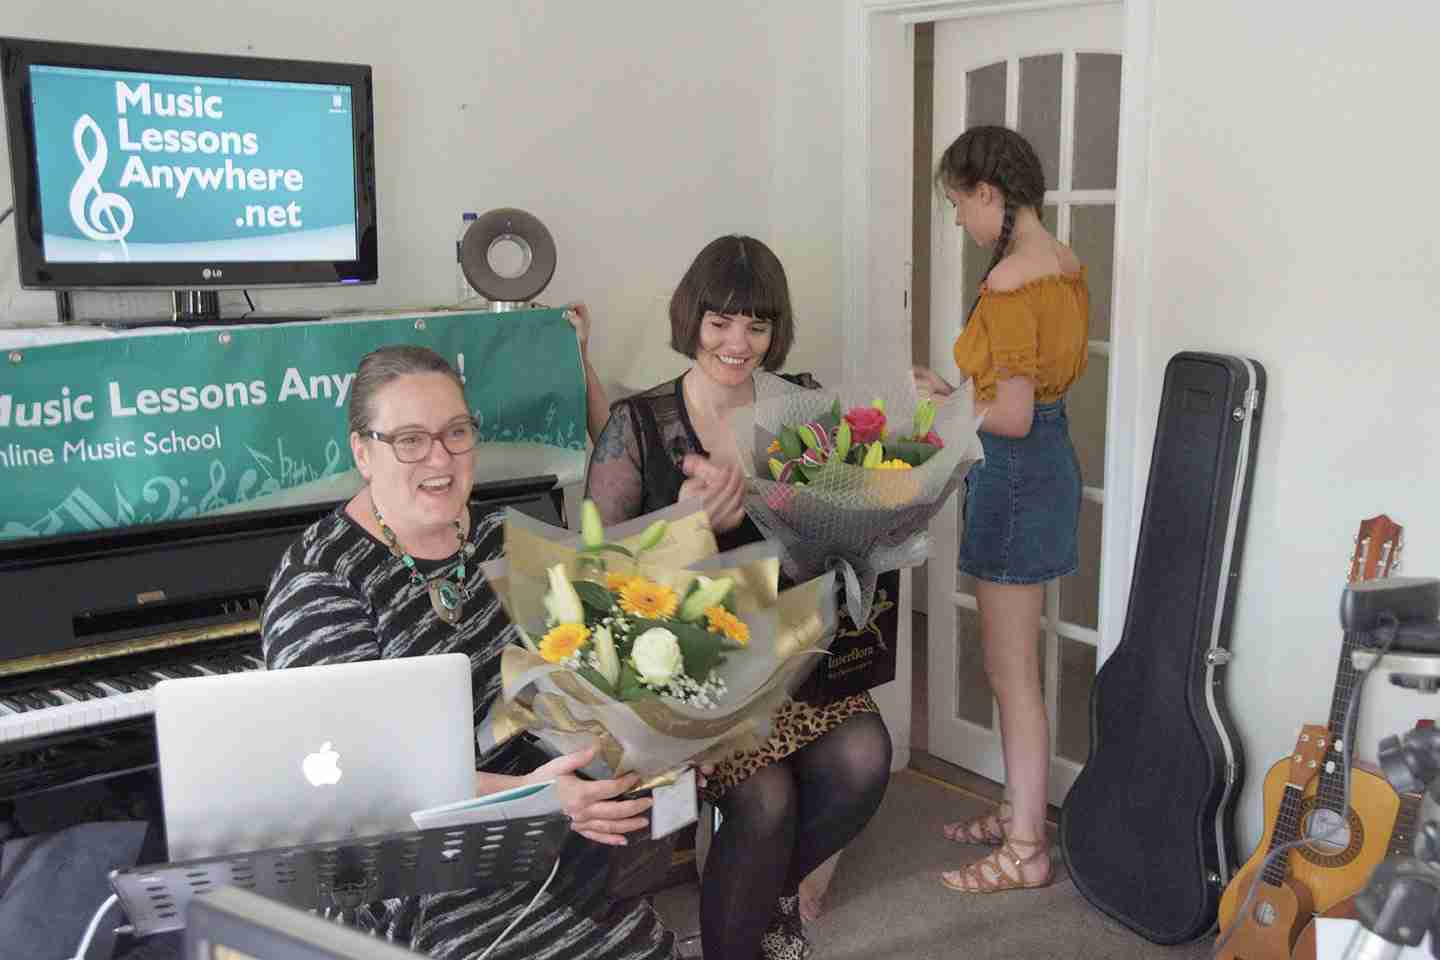 Music Lessons Anywhere Skype music lessons online Tracy Rose and Carol Hodge